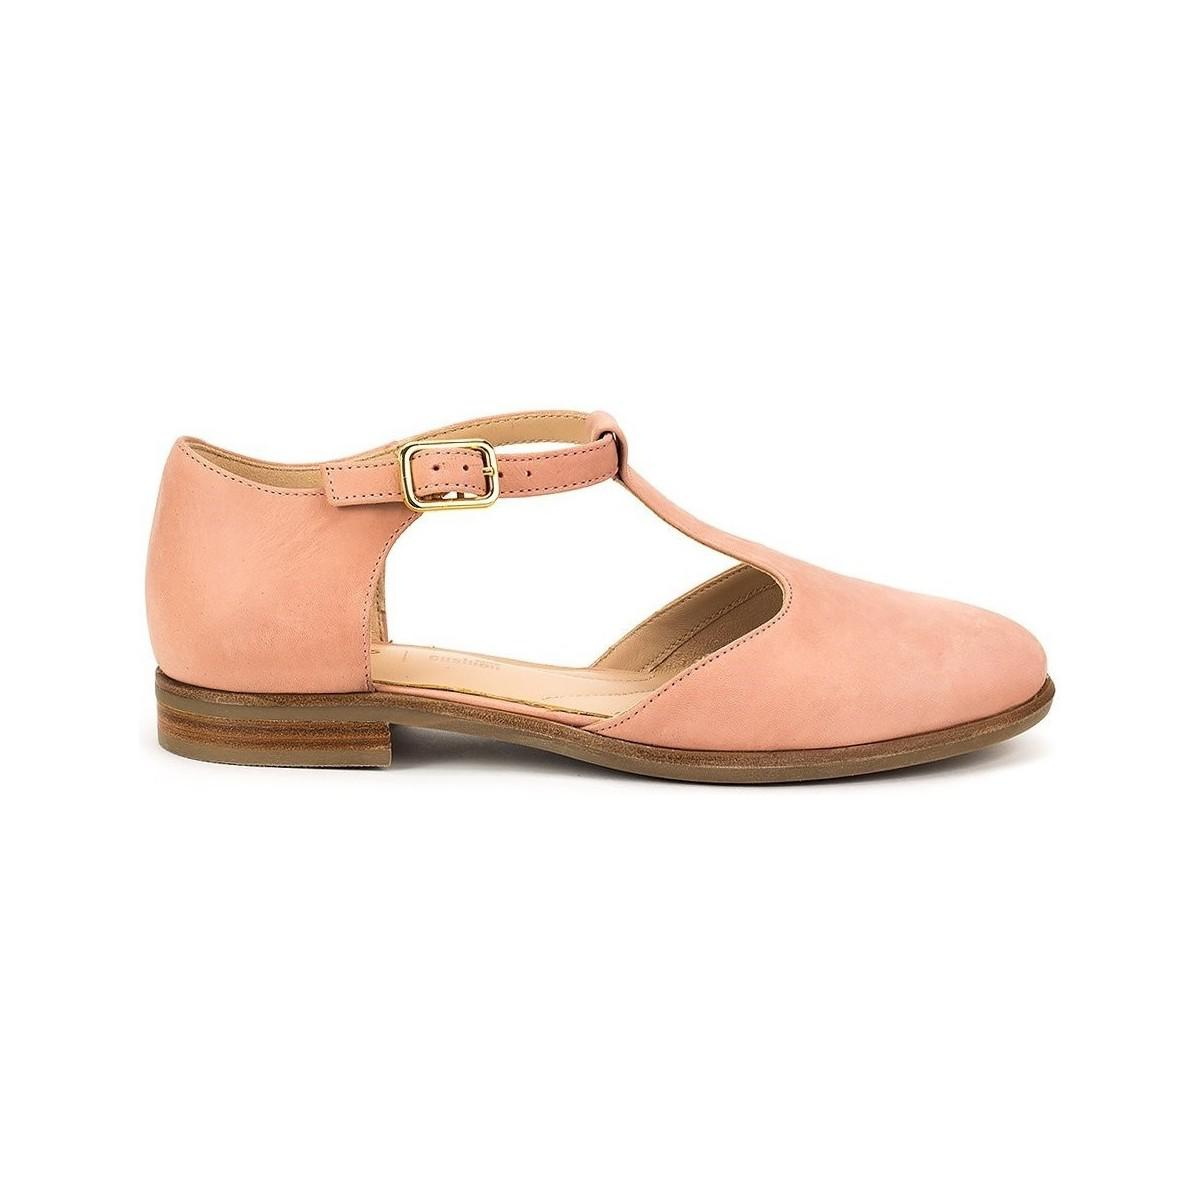 3ad1e60fd4 Clarks Alice Rosa Women's Shoes (pumps / Ballerinas) In Pink in Pink ...